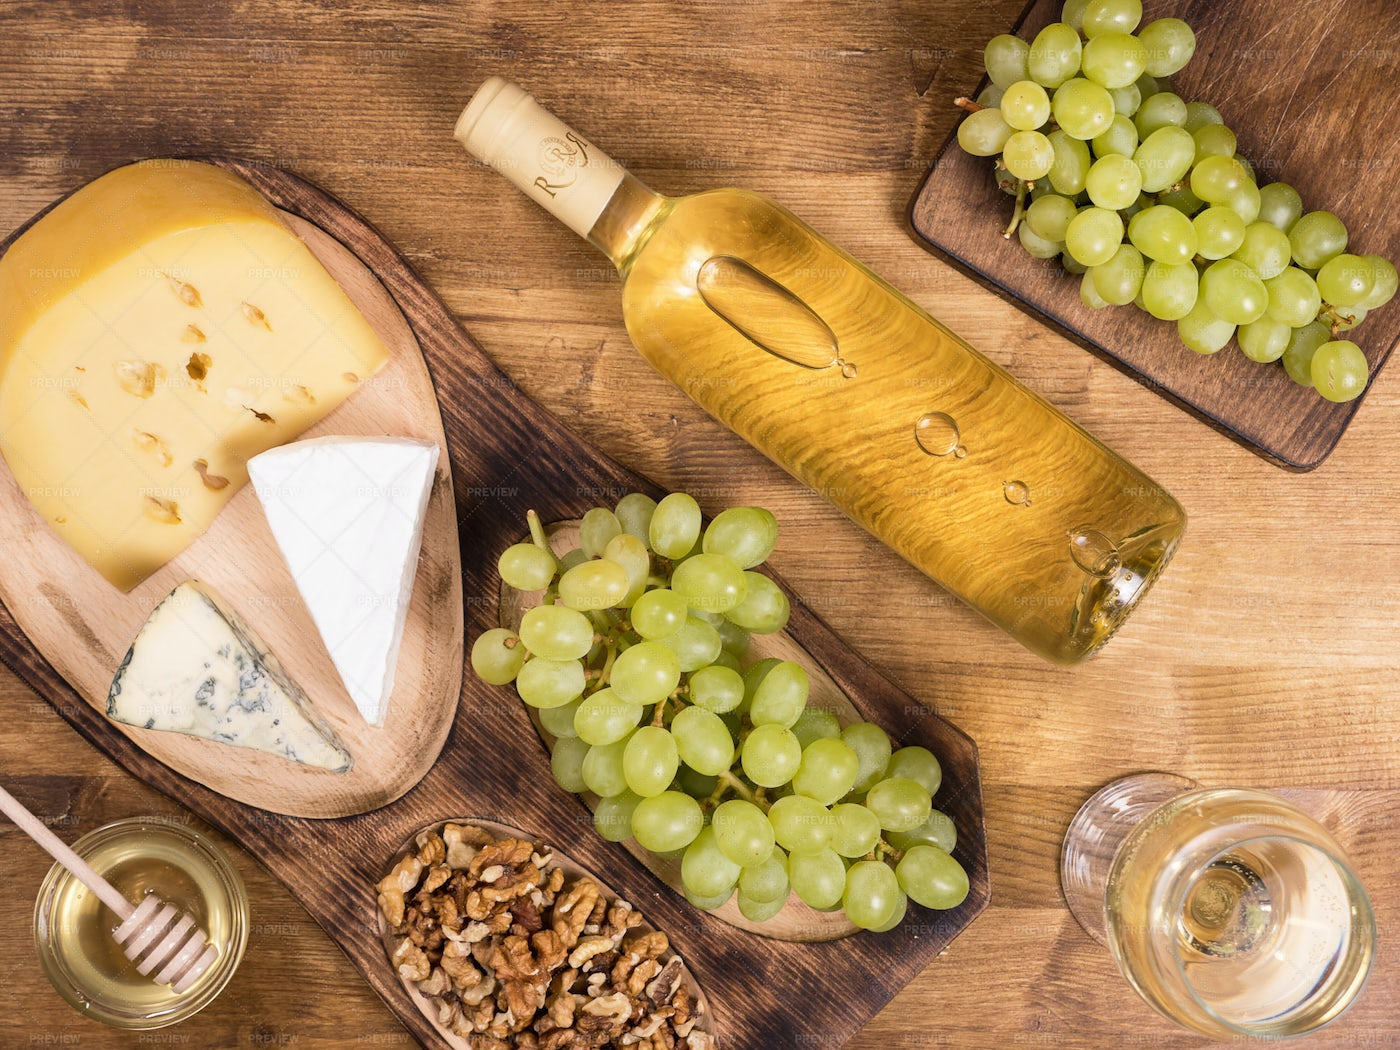 Bottle Of White Wine And Snacks: Stock Photos